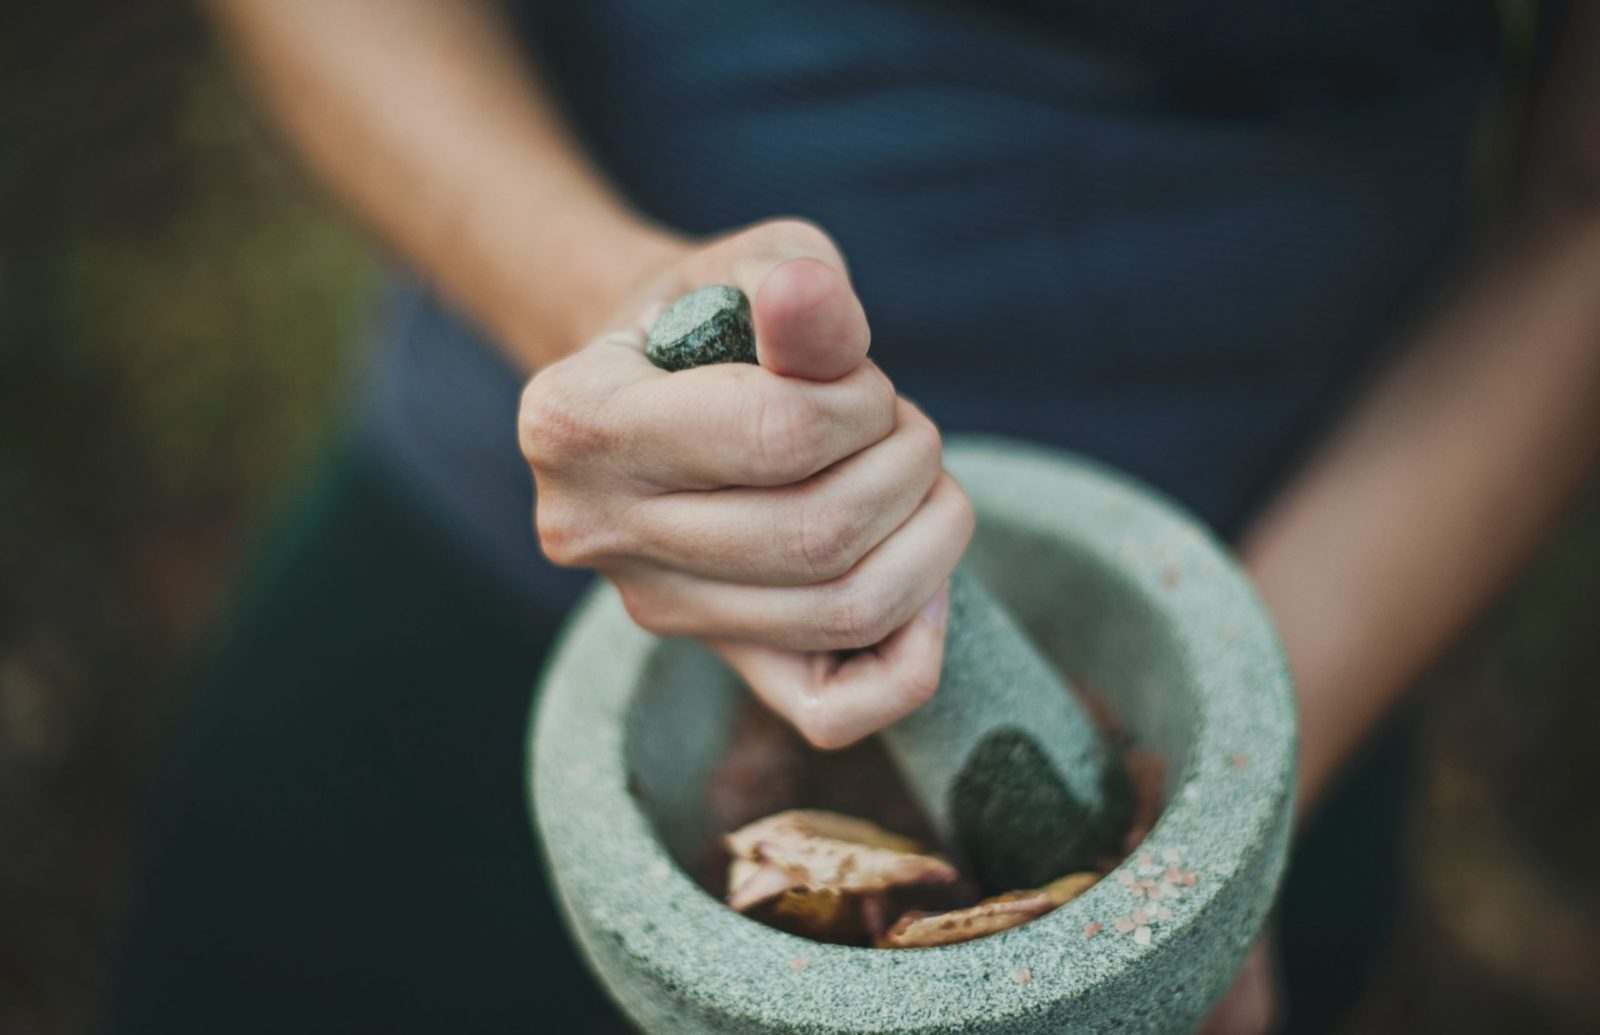 Grinding chinese herbs with mortar and pestle